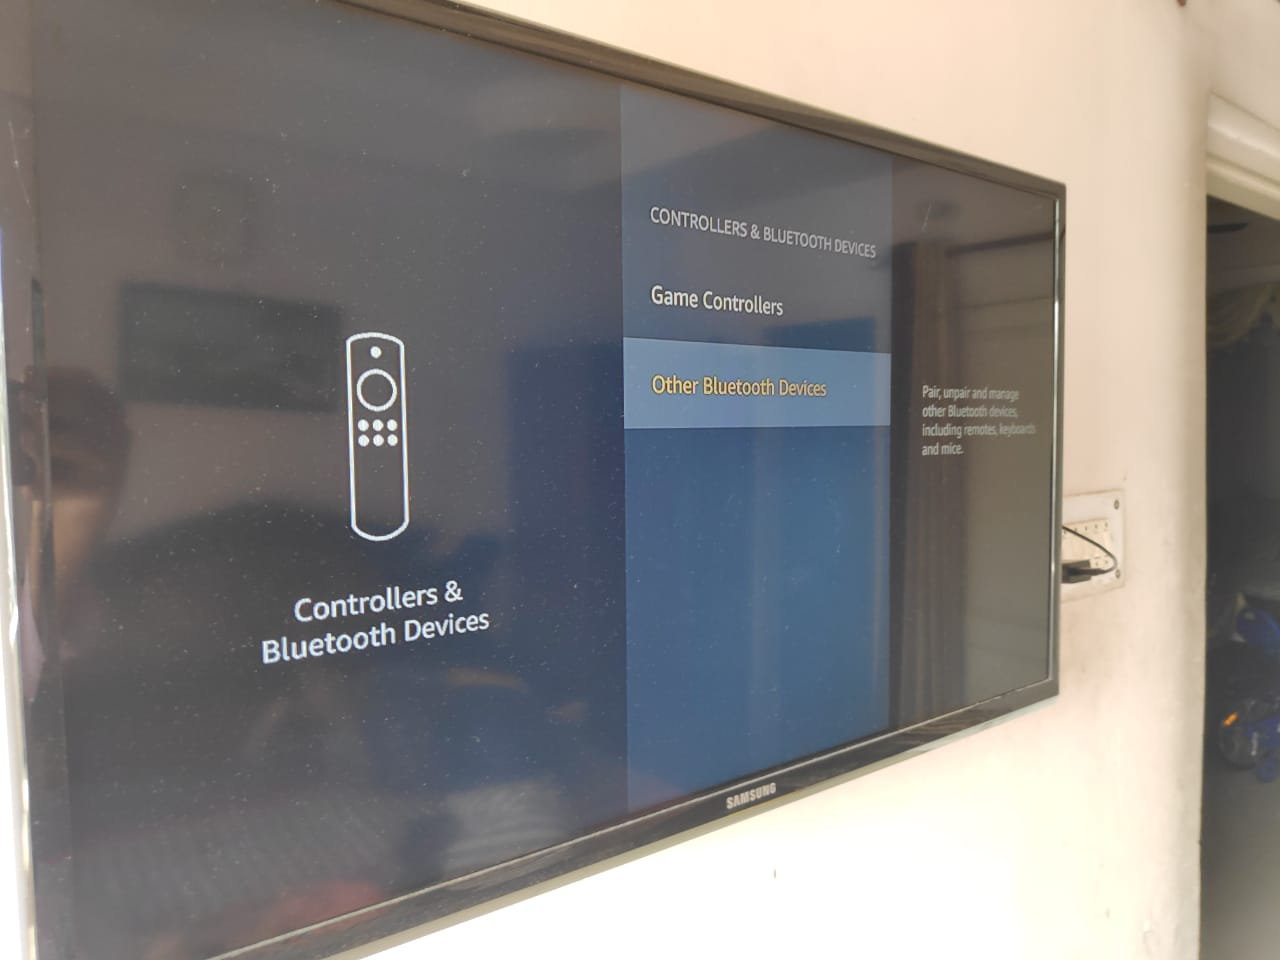 Add External Speakers to Amazon Fire Stick93